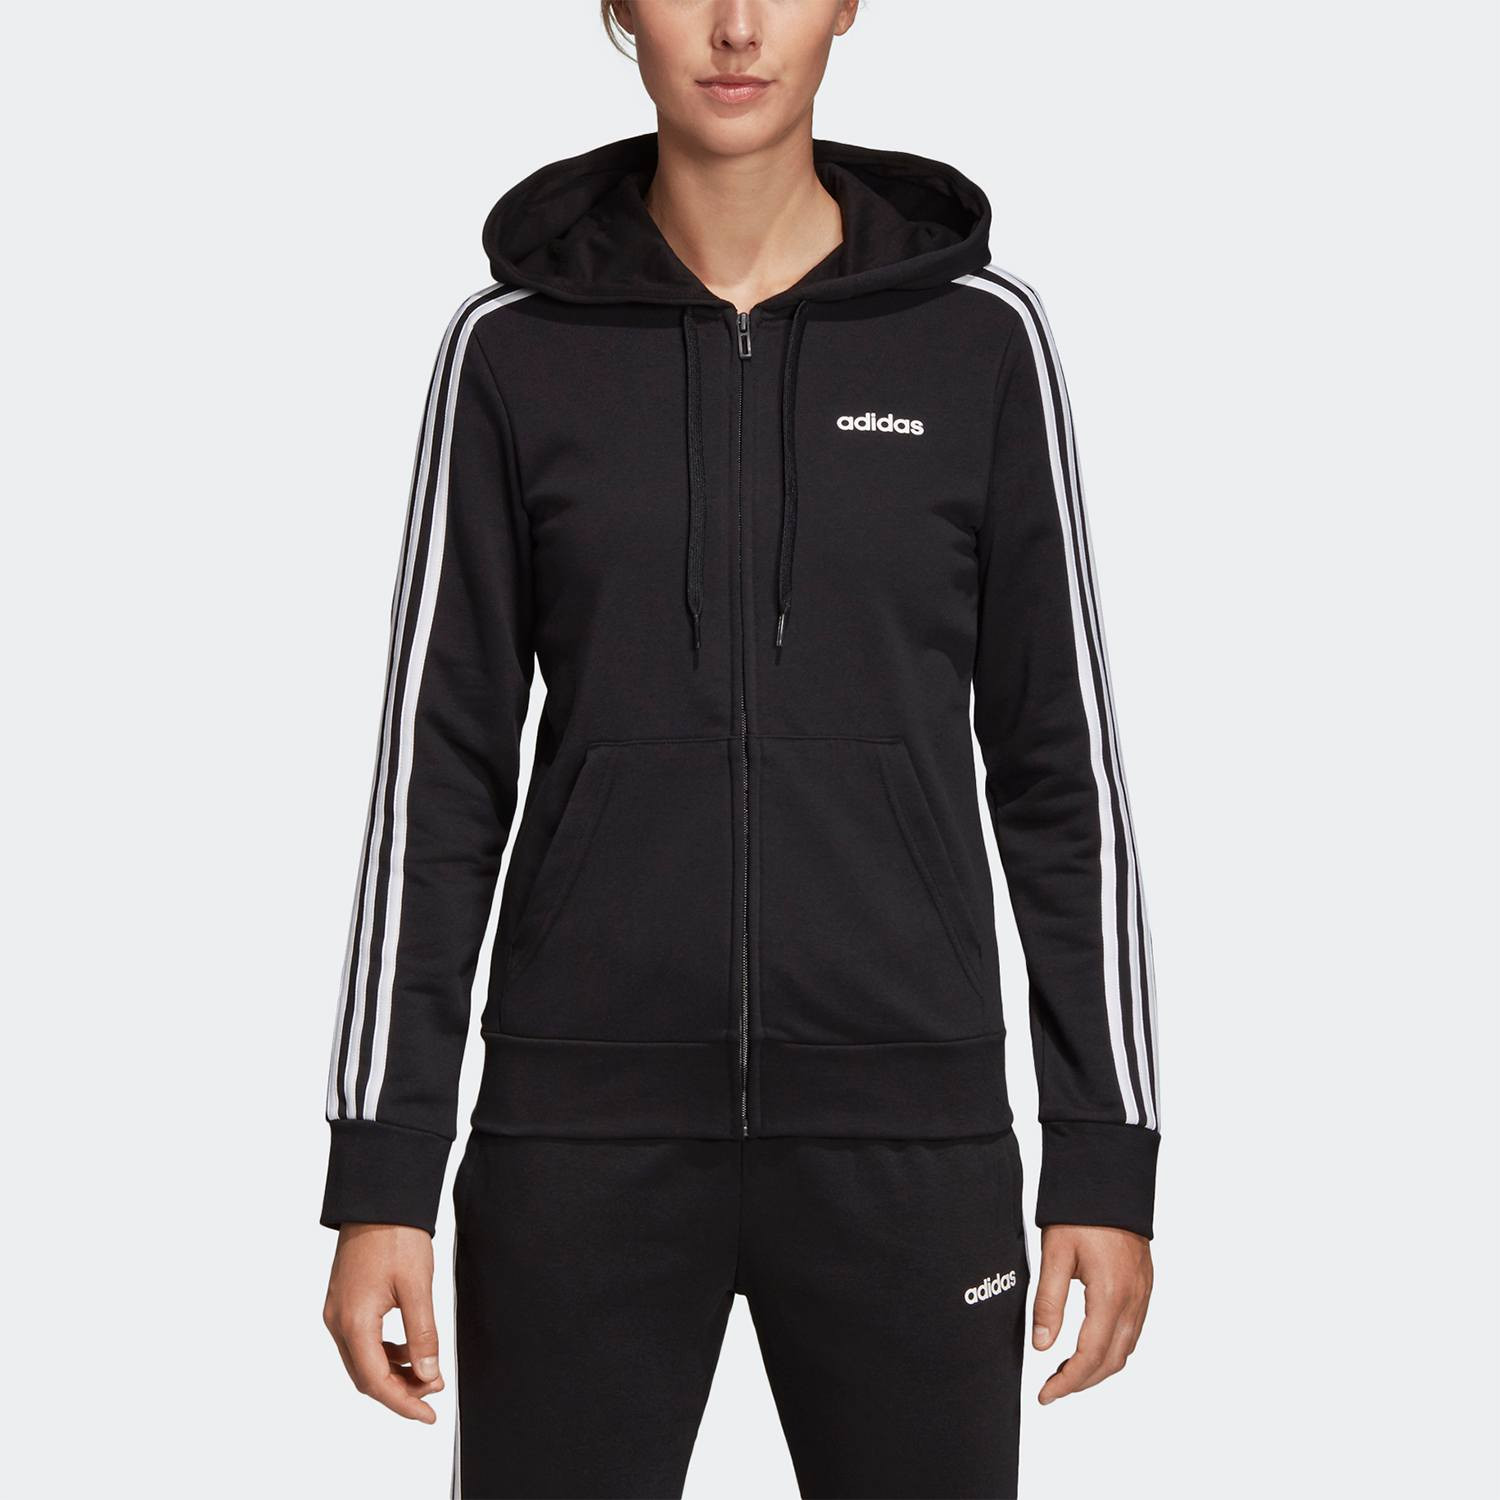 adidas Core Essentials 3-Stripes Women's Track Jacket (9000027566_1480)